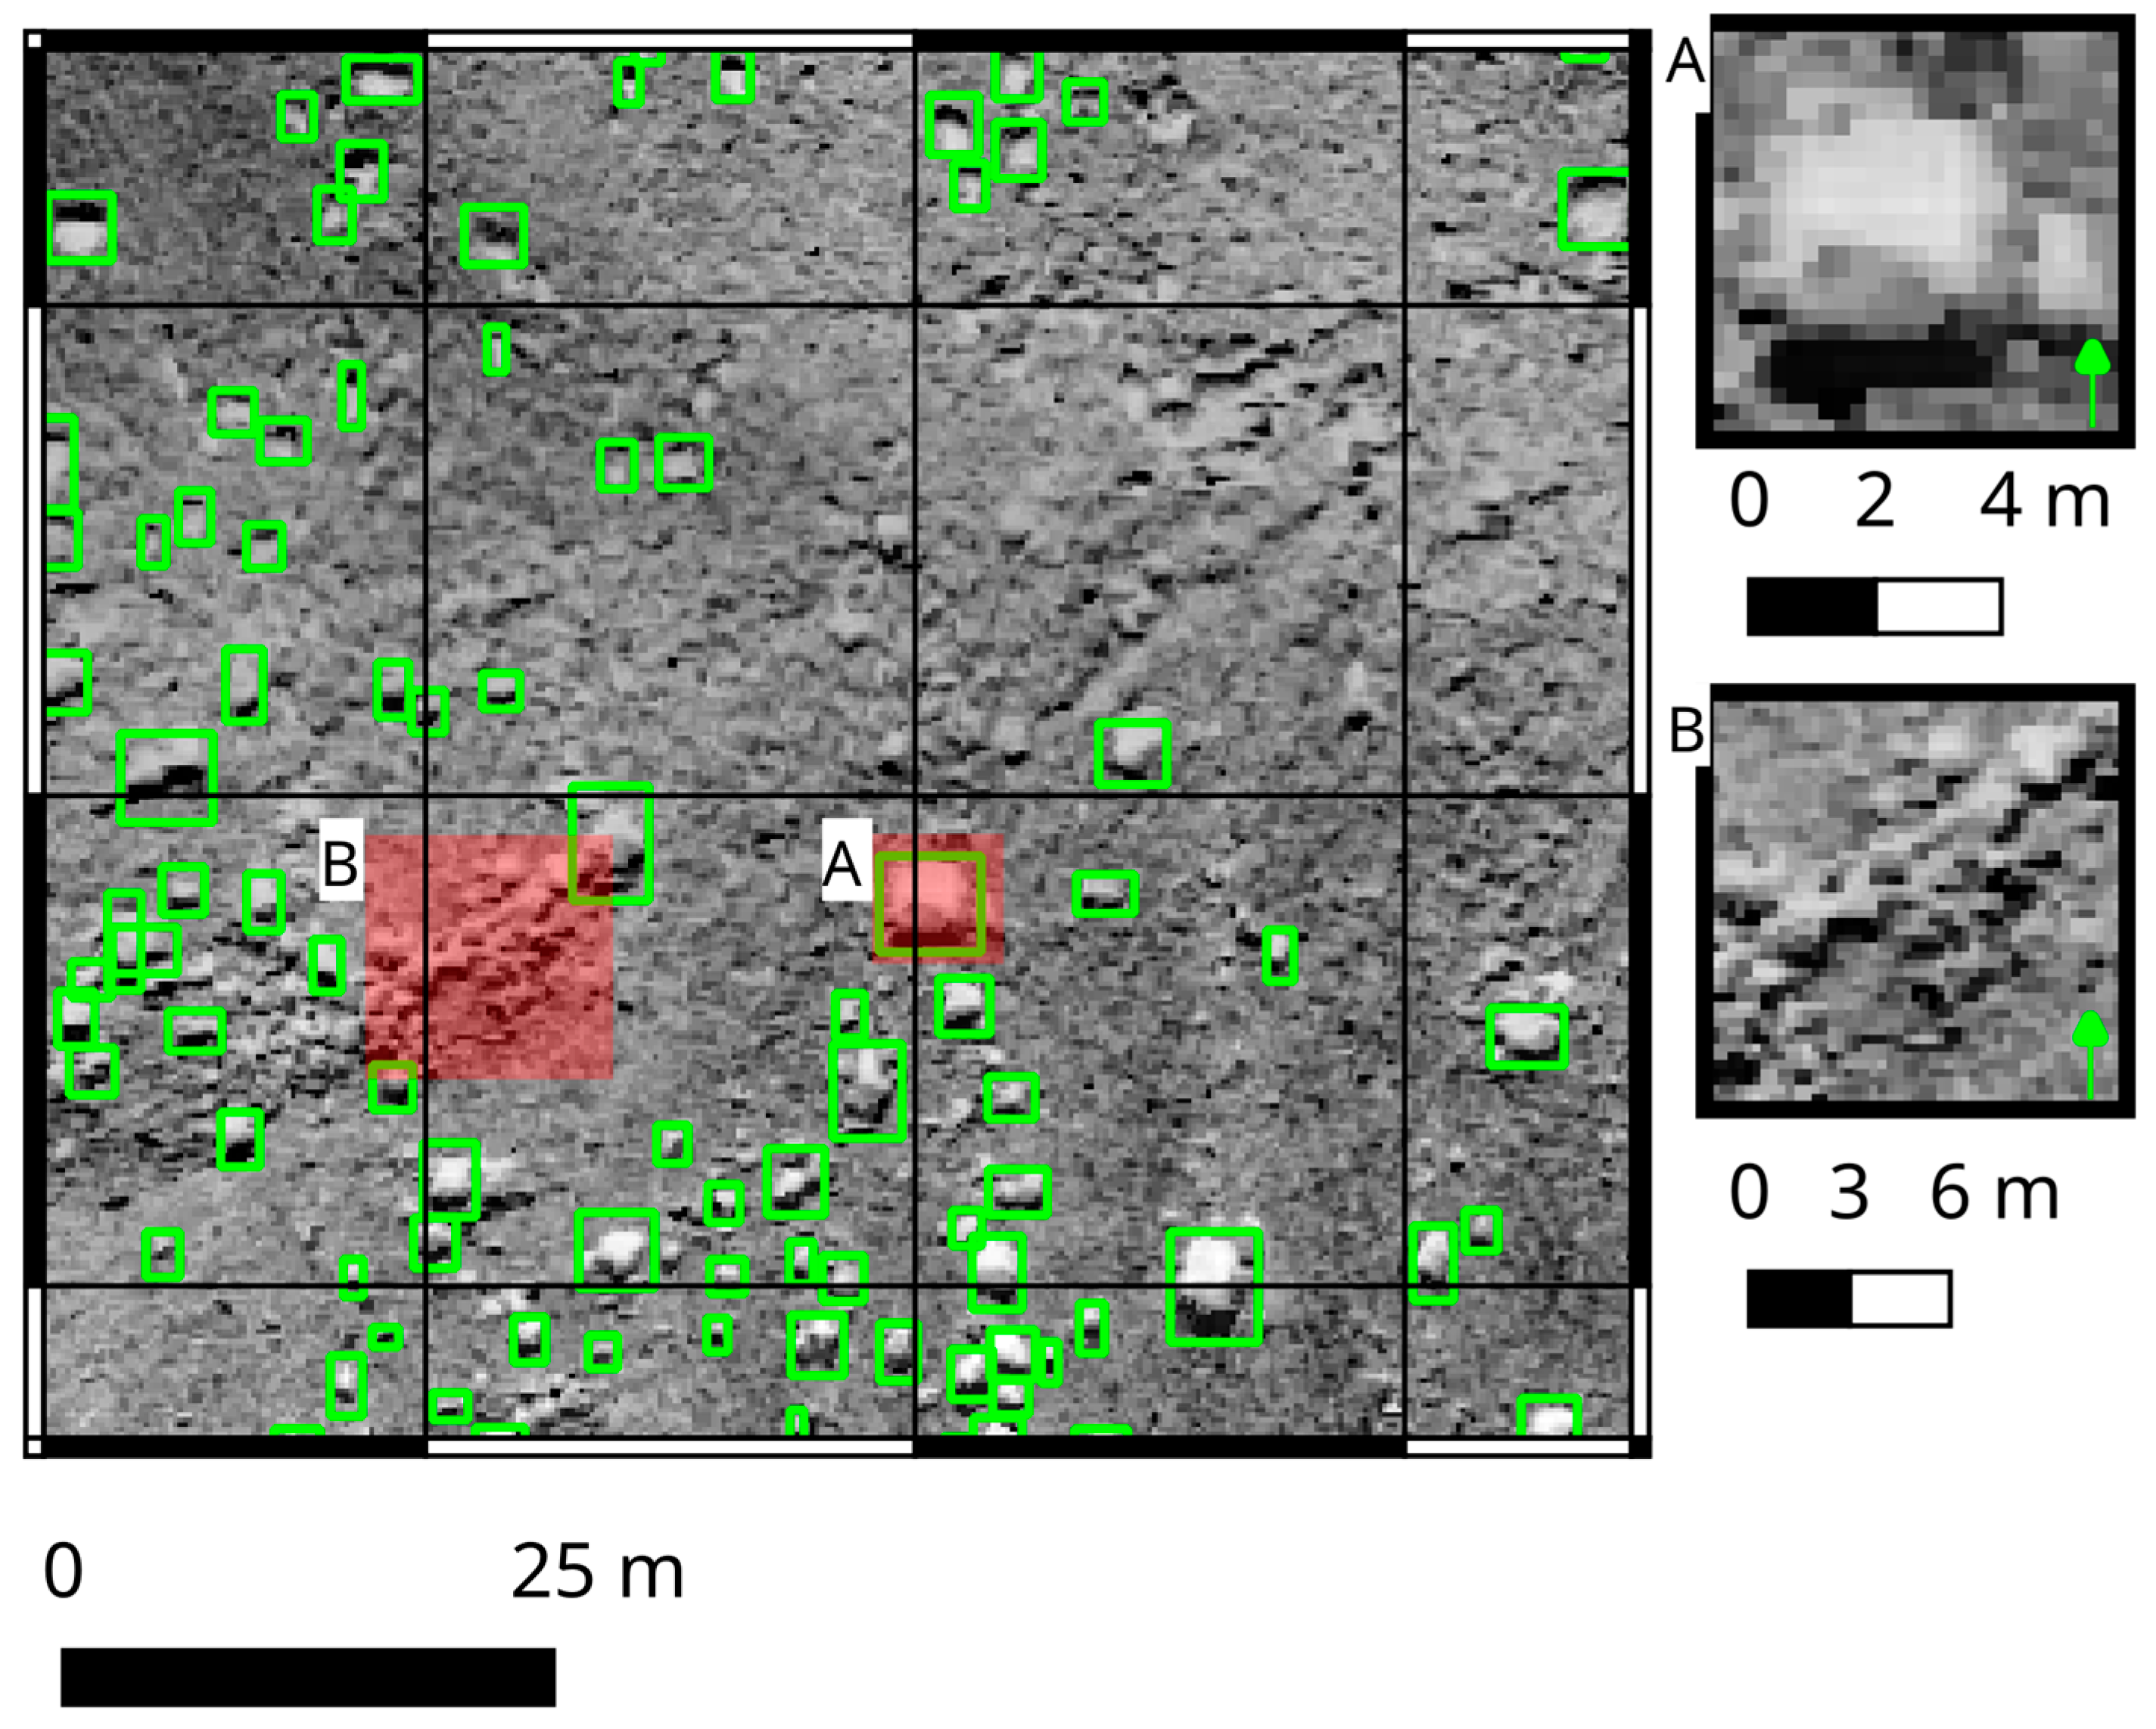 Geosciences | Free Full-Text | Detection of Boulders in Side Scan